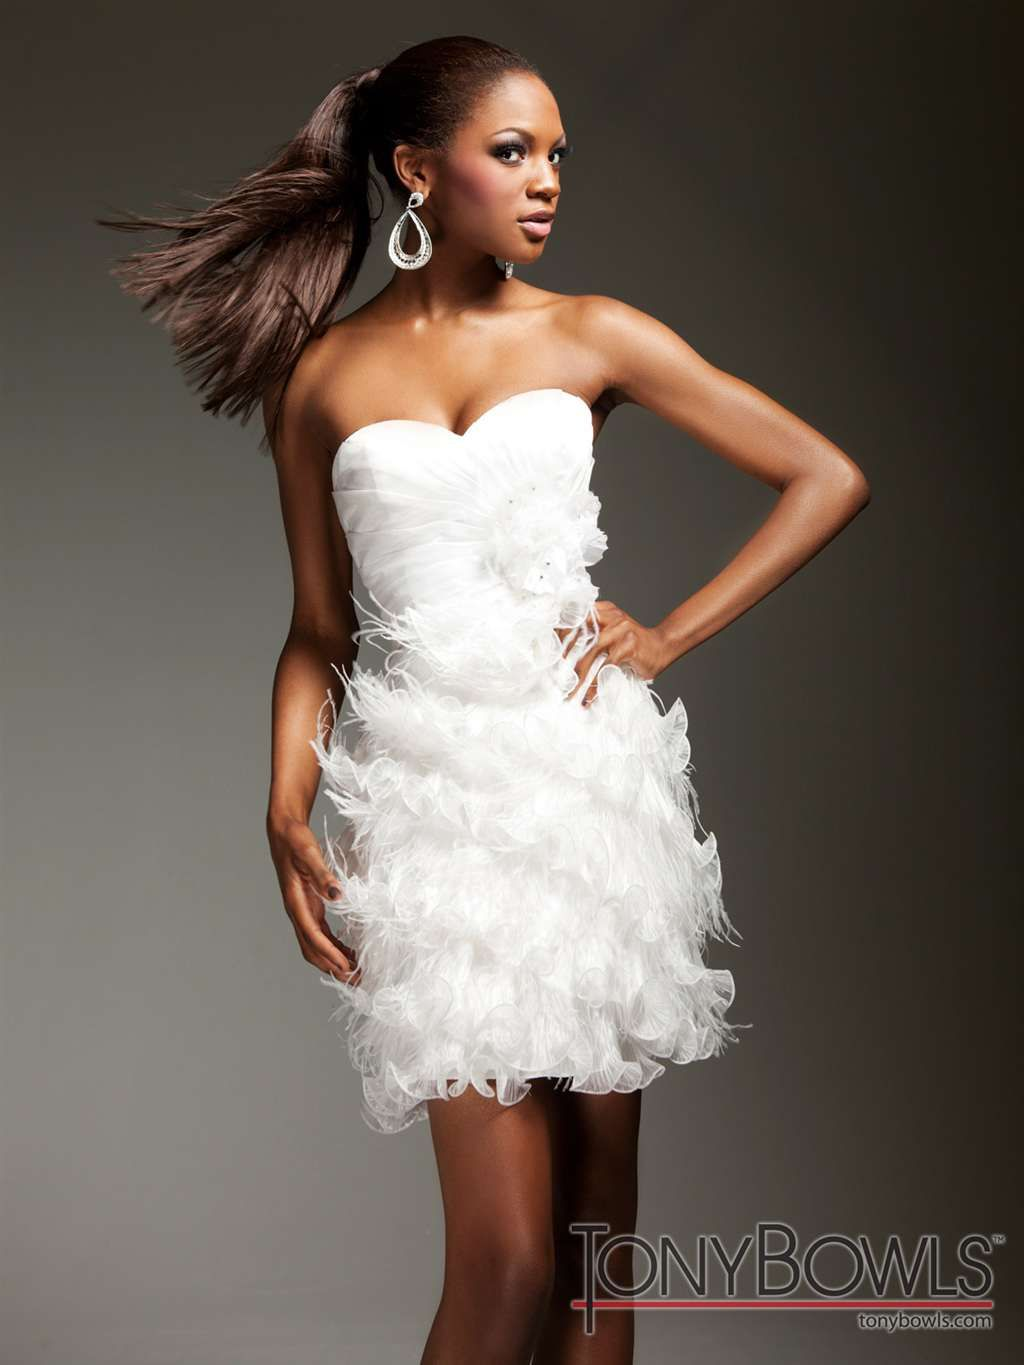 Tony bowls organza short dress ts brideus second look